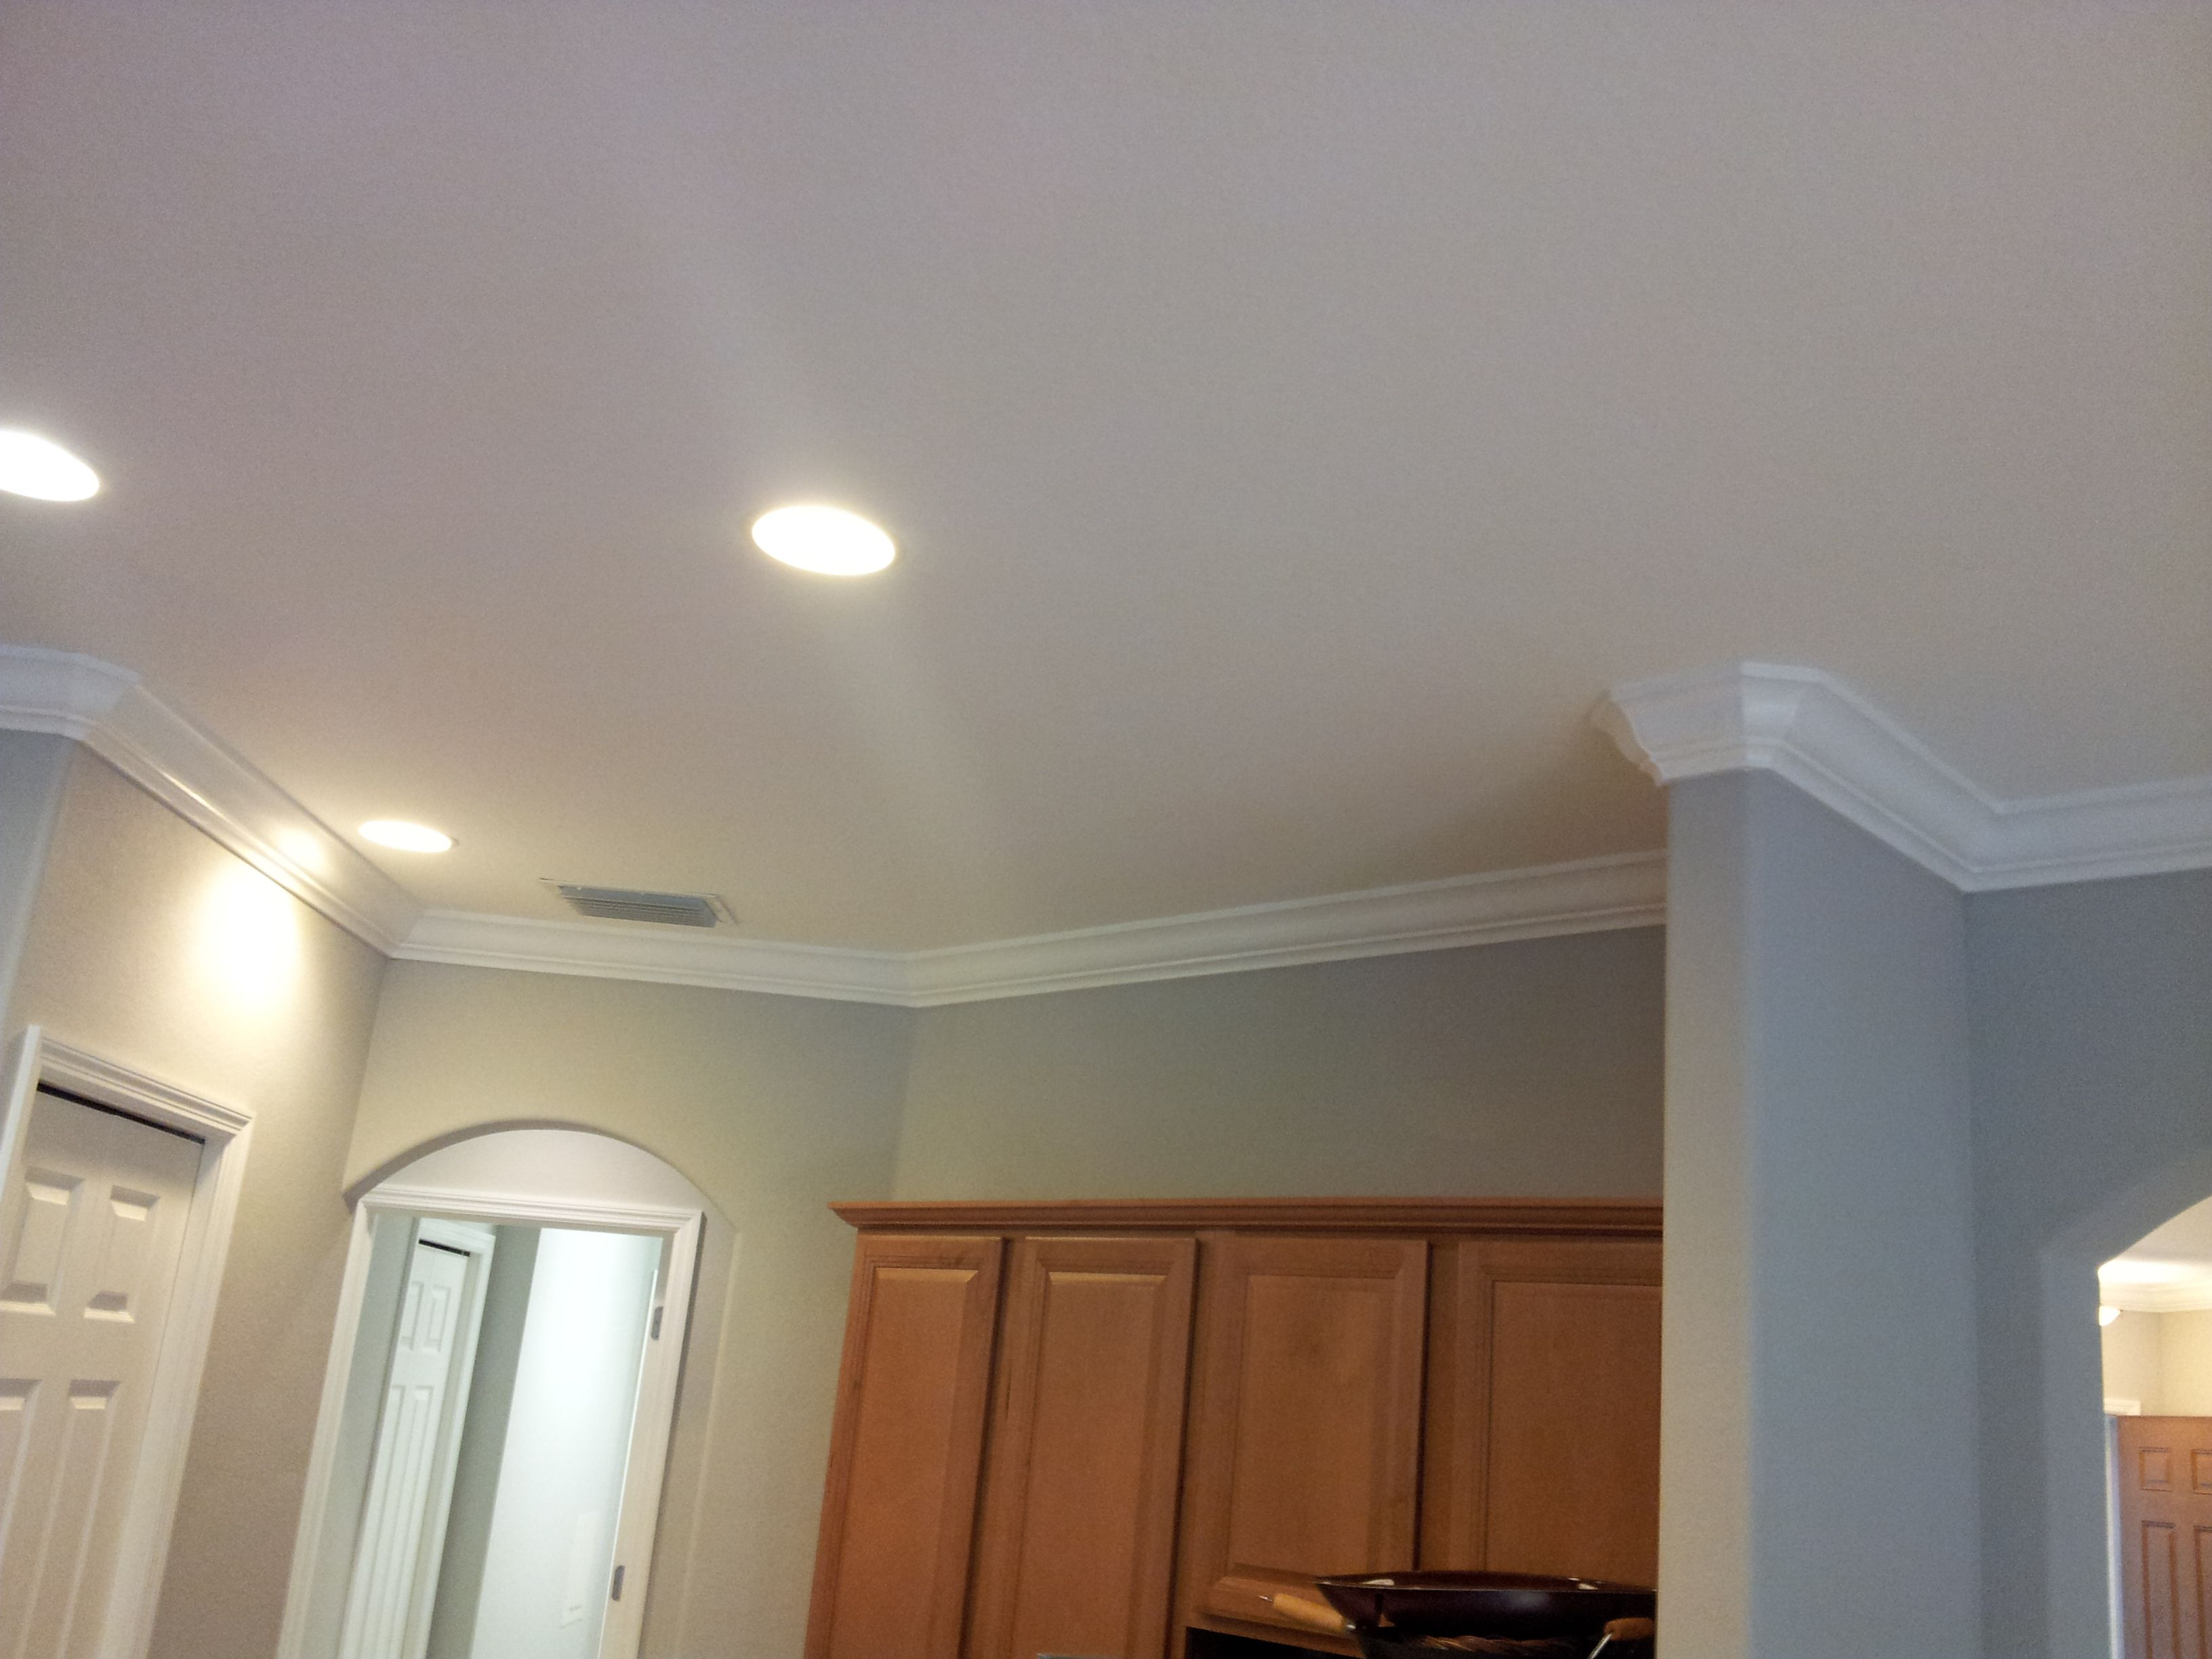 great how to on crown molding those rounded corners | For the Home ...